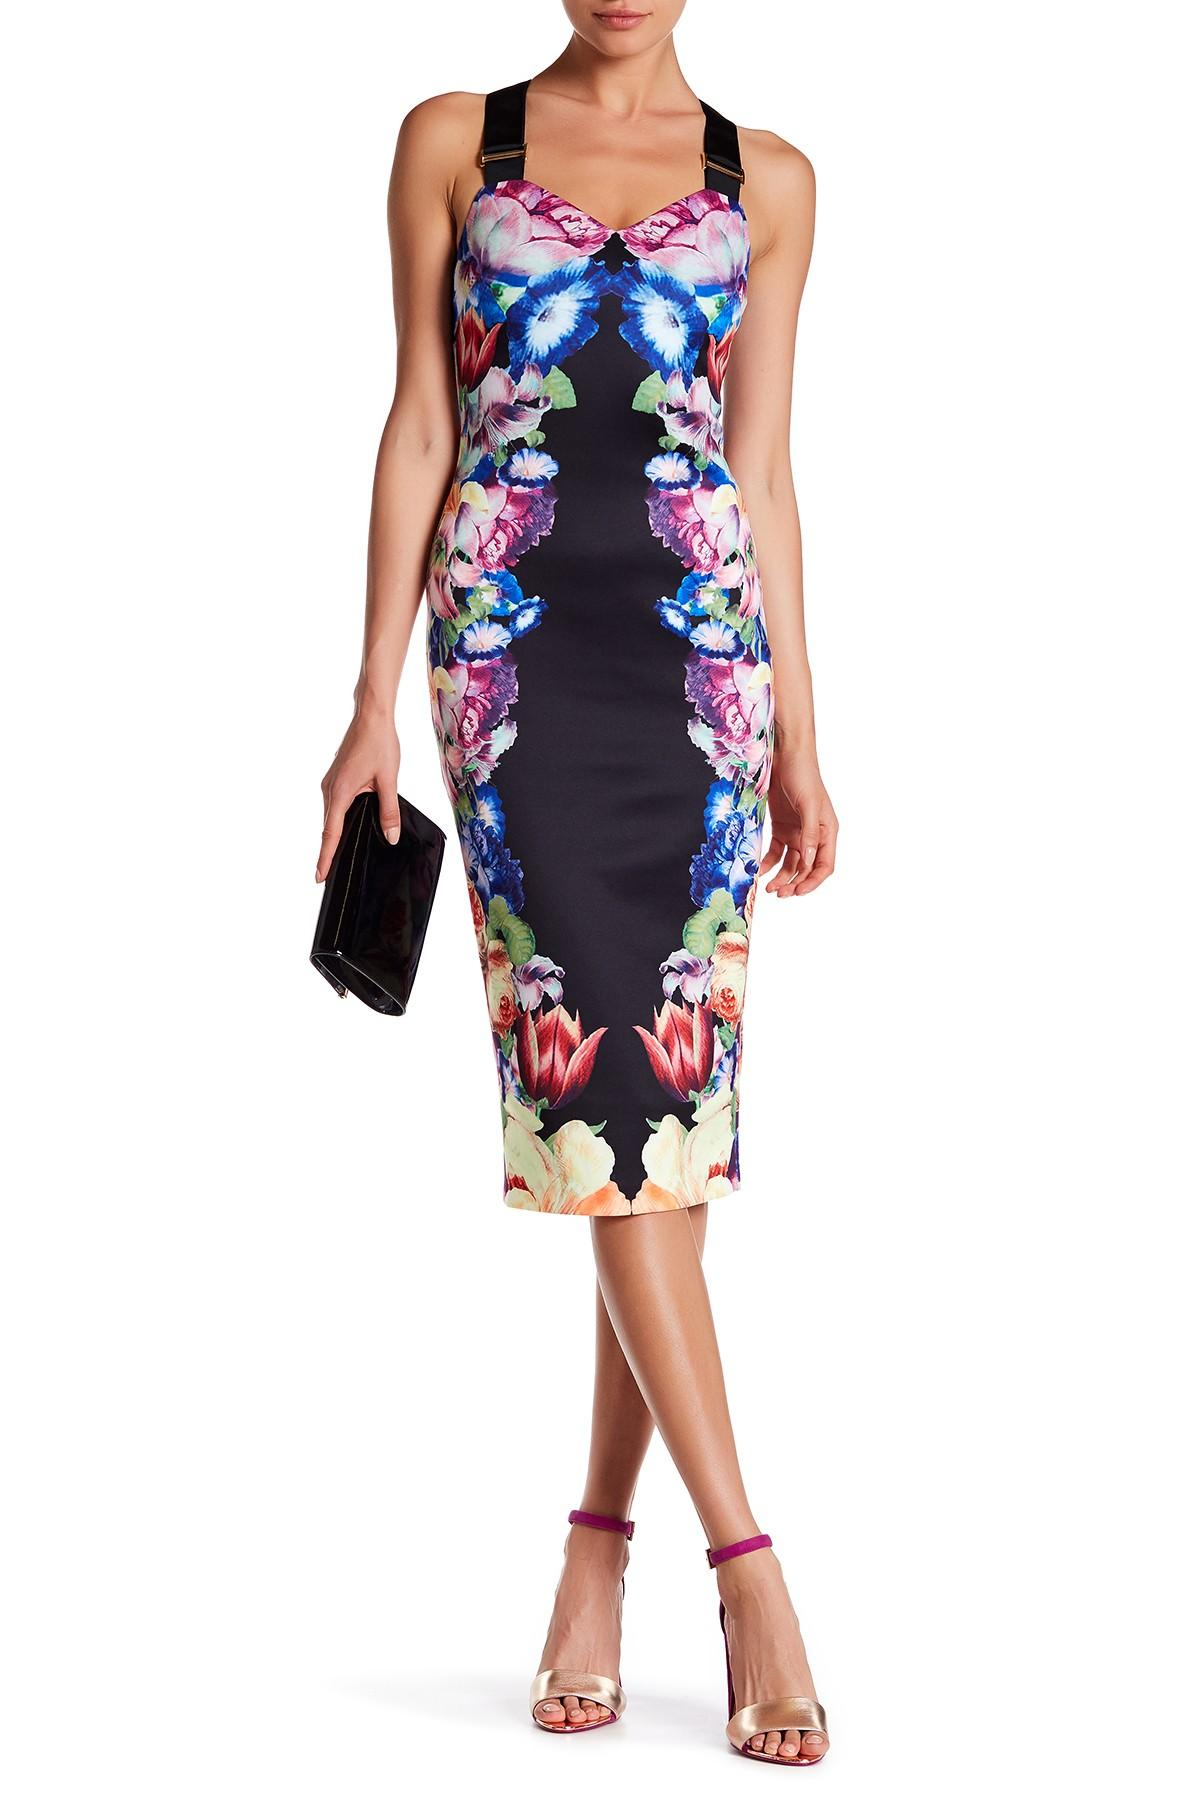 574ec63cb8a5d Lyst - Ted Baker Deony Tapestry Floral Buckle Dress in Black